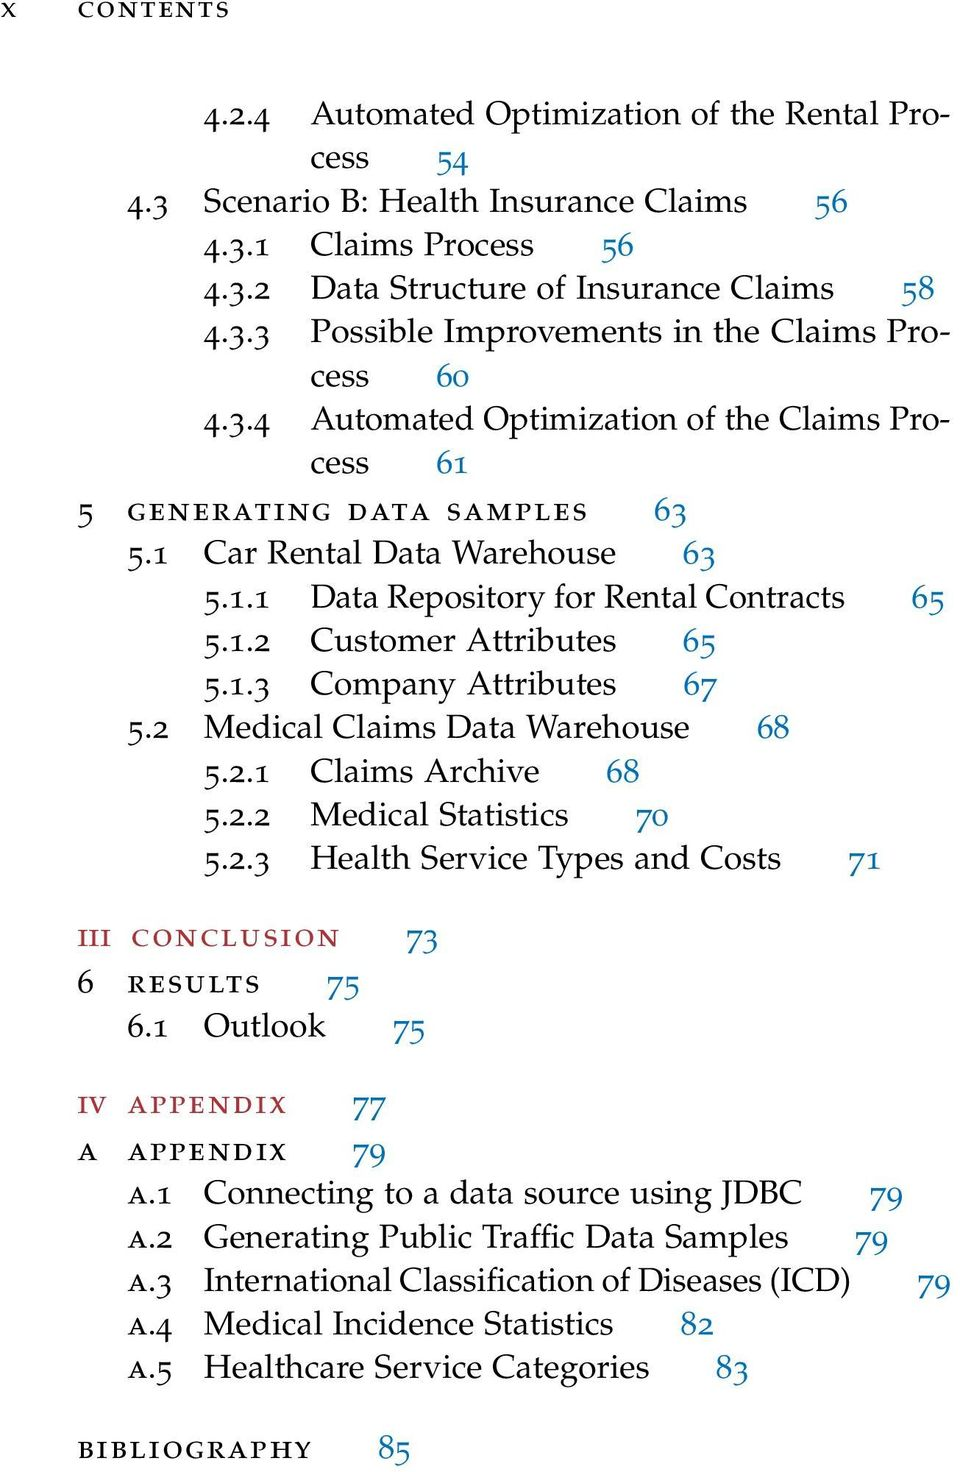 2 Medical Claims Data Warehouse 68 5.2.1 Claims Archive 68 5.2.2 Medical Statistics 70 5.2.3 Health Service Types and Costs 71 iii conclusion 73 6 results 75 6.